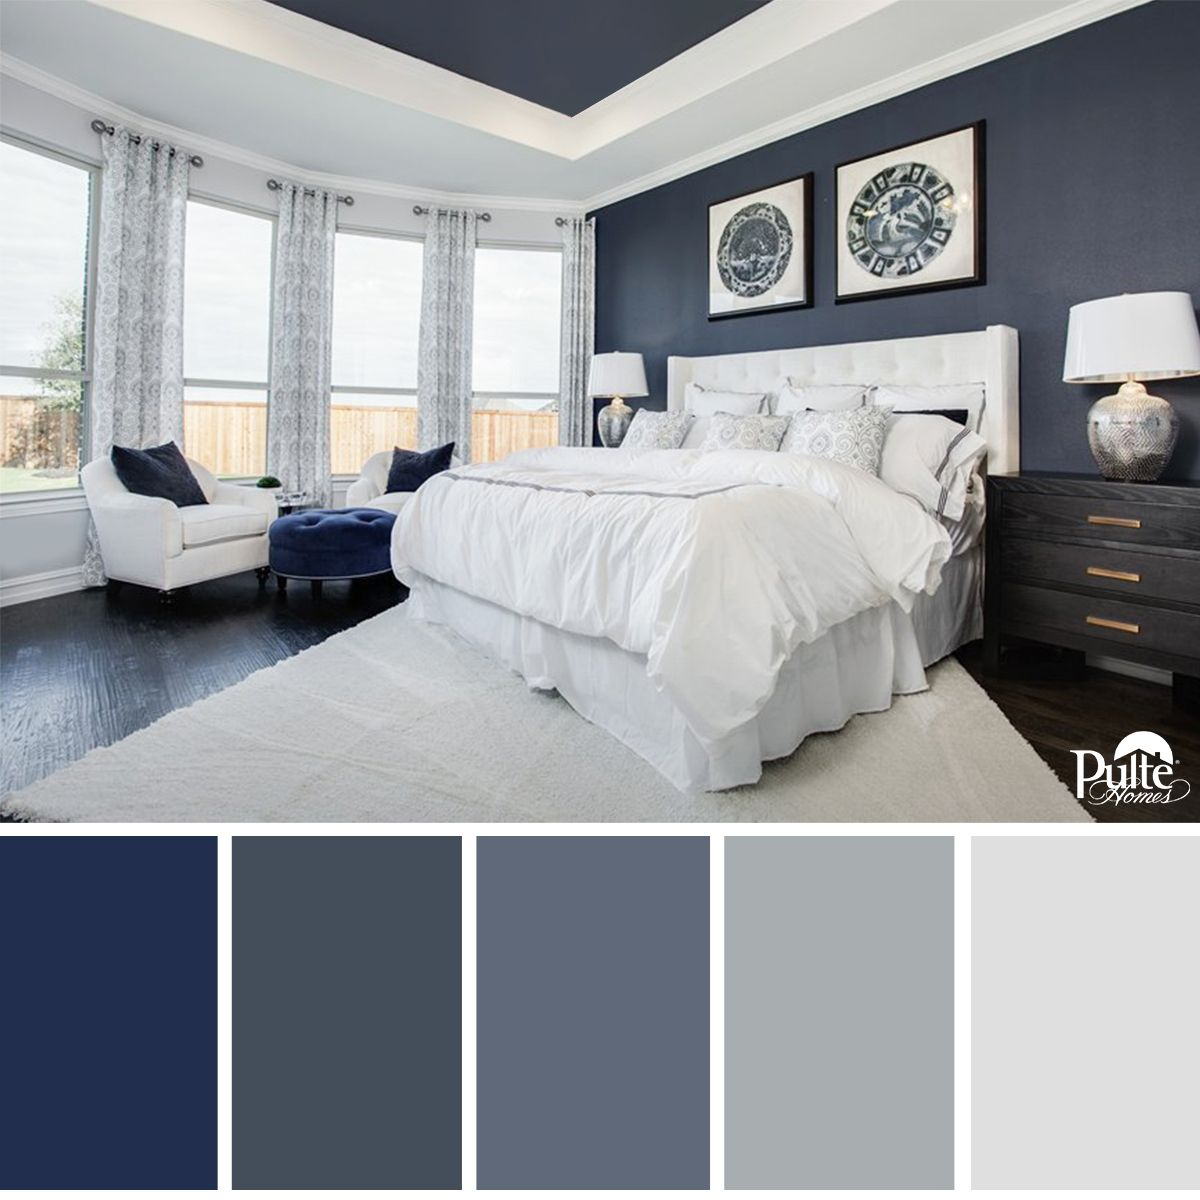 Master bedroom color design - This Bedroom Design Has The Right Idea The Rich Blue Color Palette And Decor Create